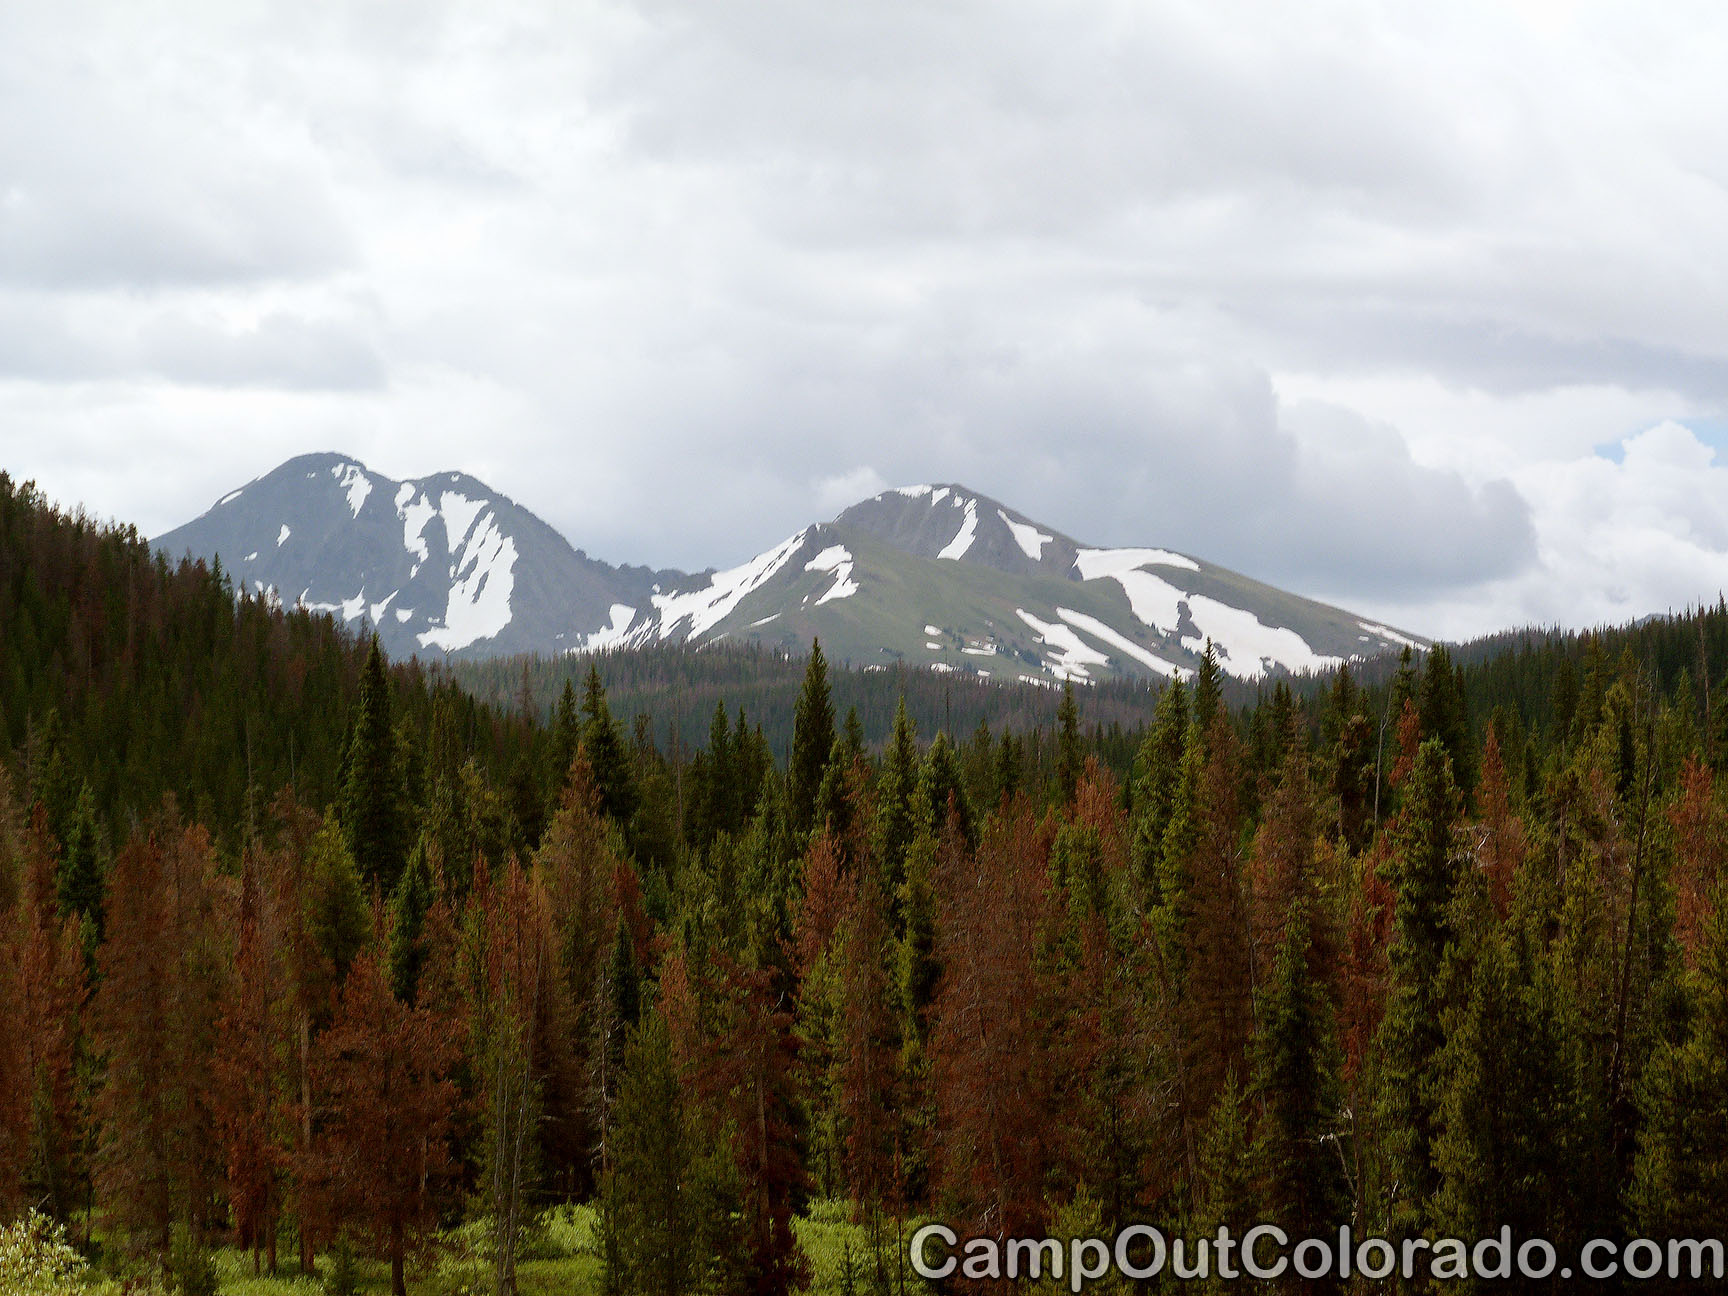 Camp-out-colorado-bockman-campground-beetle-kill-peaks